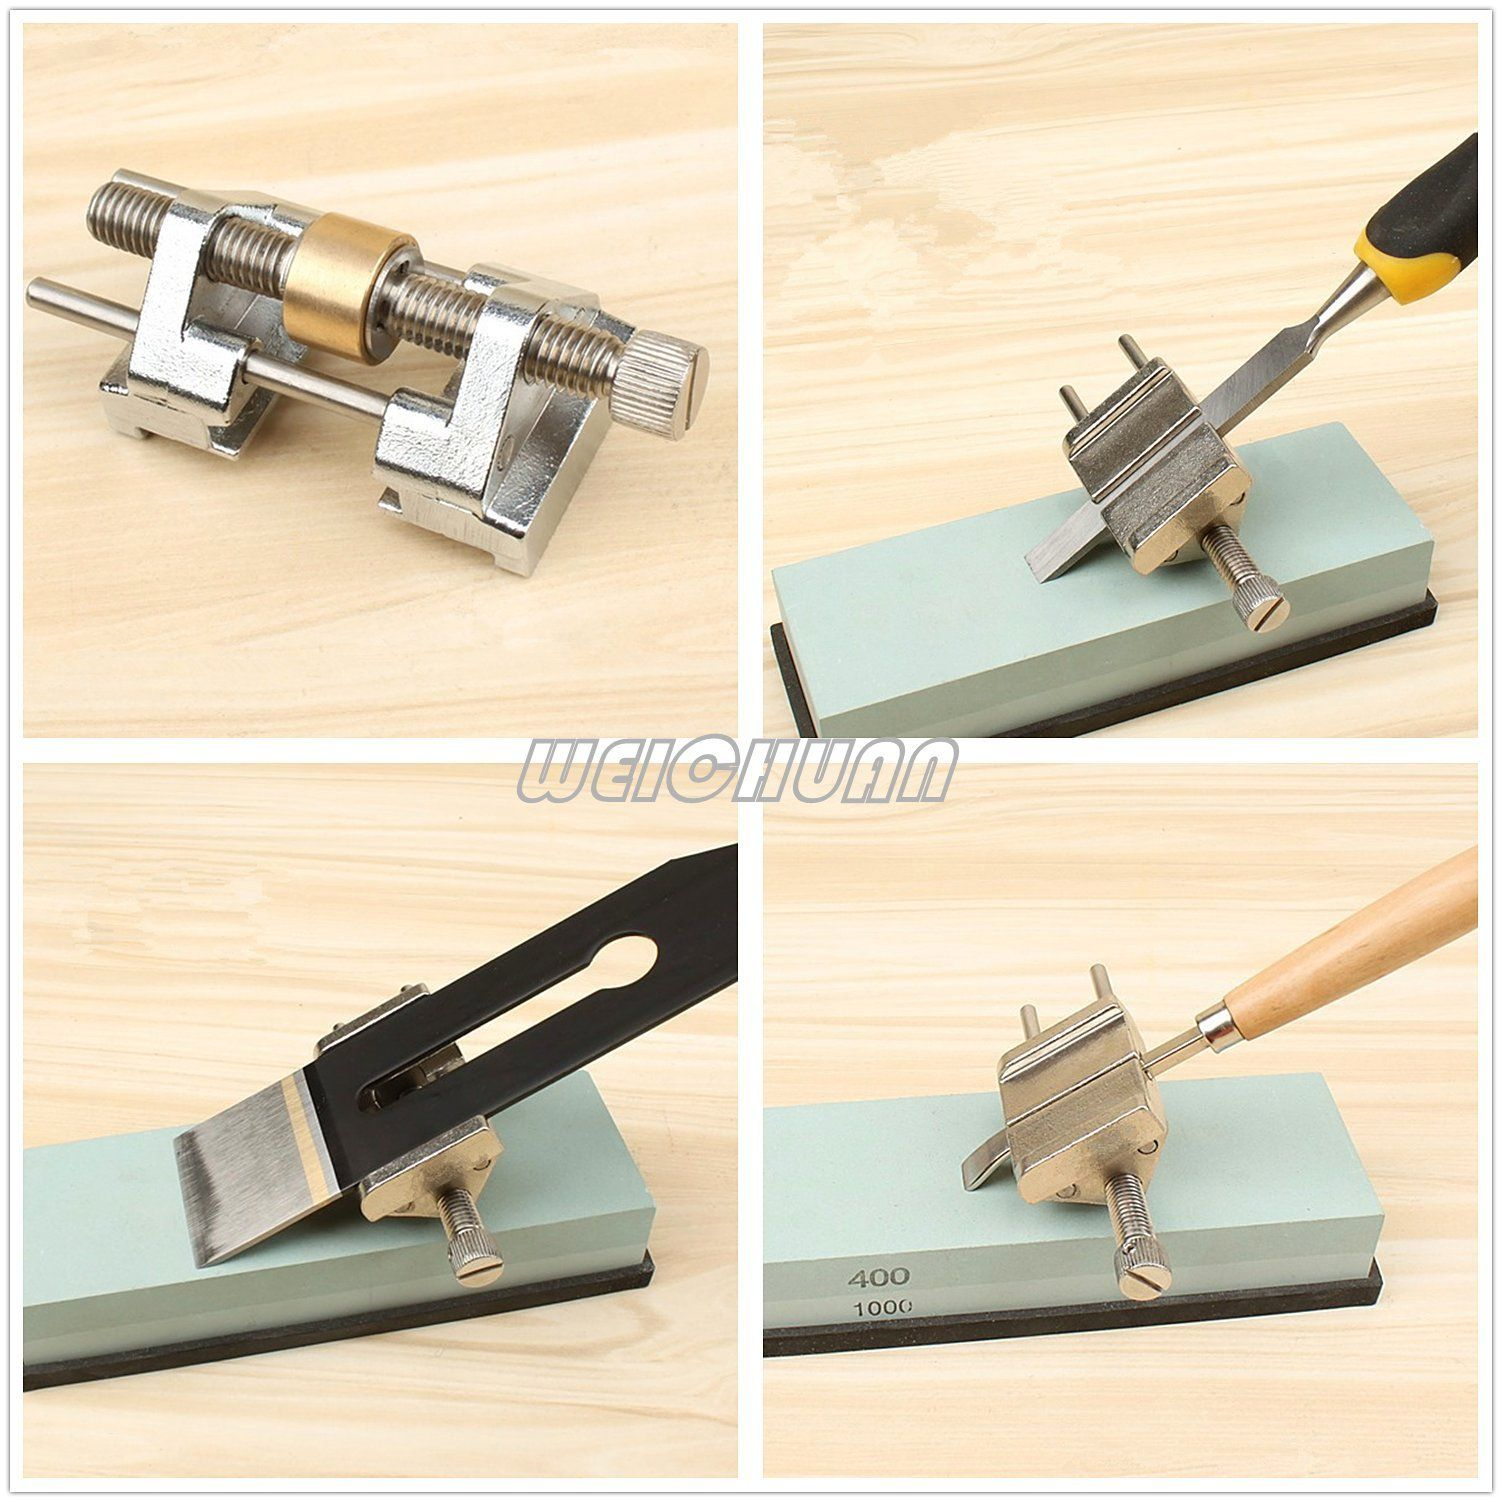 Weichuan Stainless Steel Honing Guide For Wood Chisel Fixed Angle Knife Sharpener Planer Blade Sharpeningfits Pla Blade Sharpening Knife Sharpening Wood Chisel